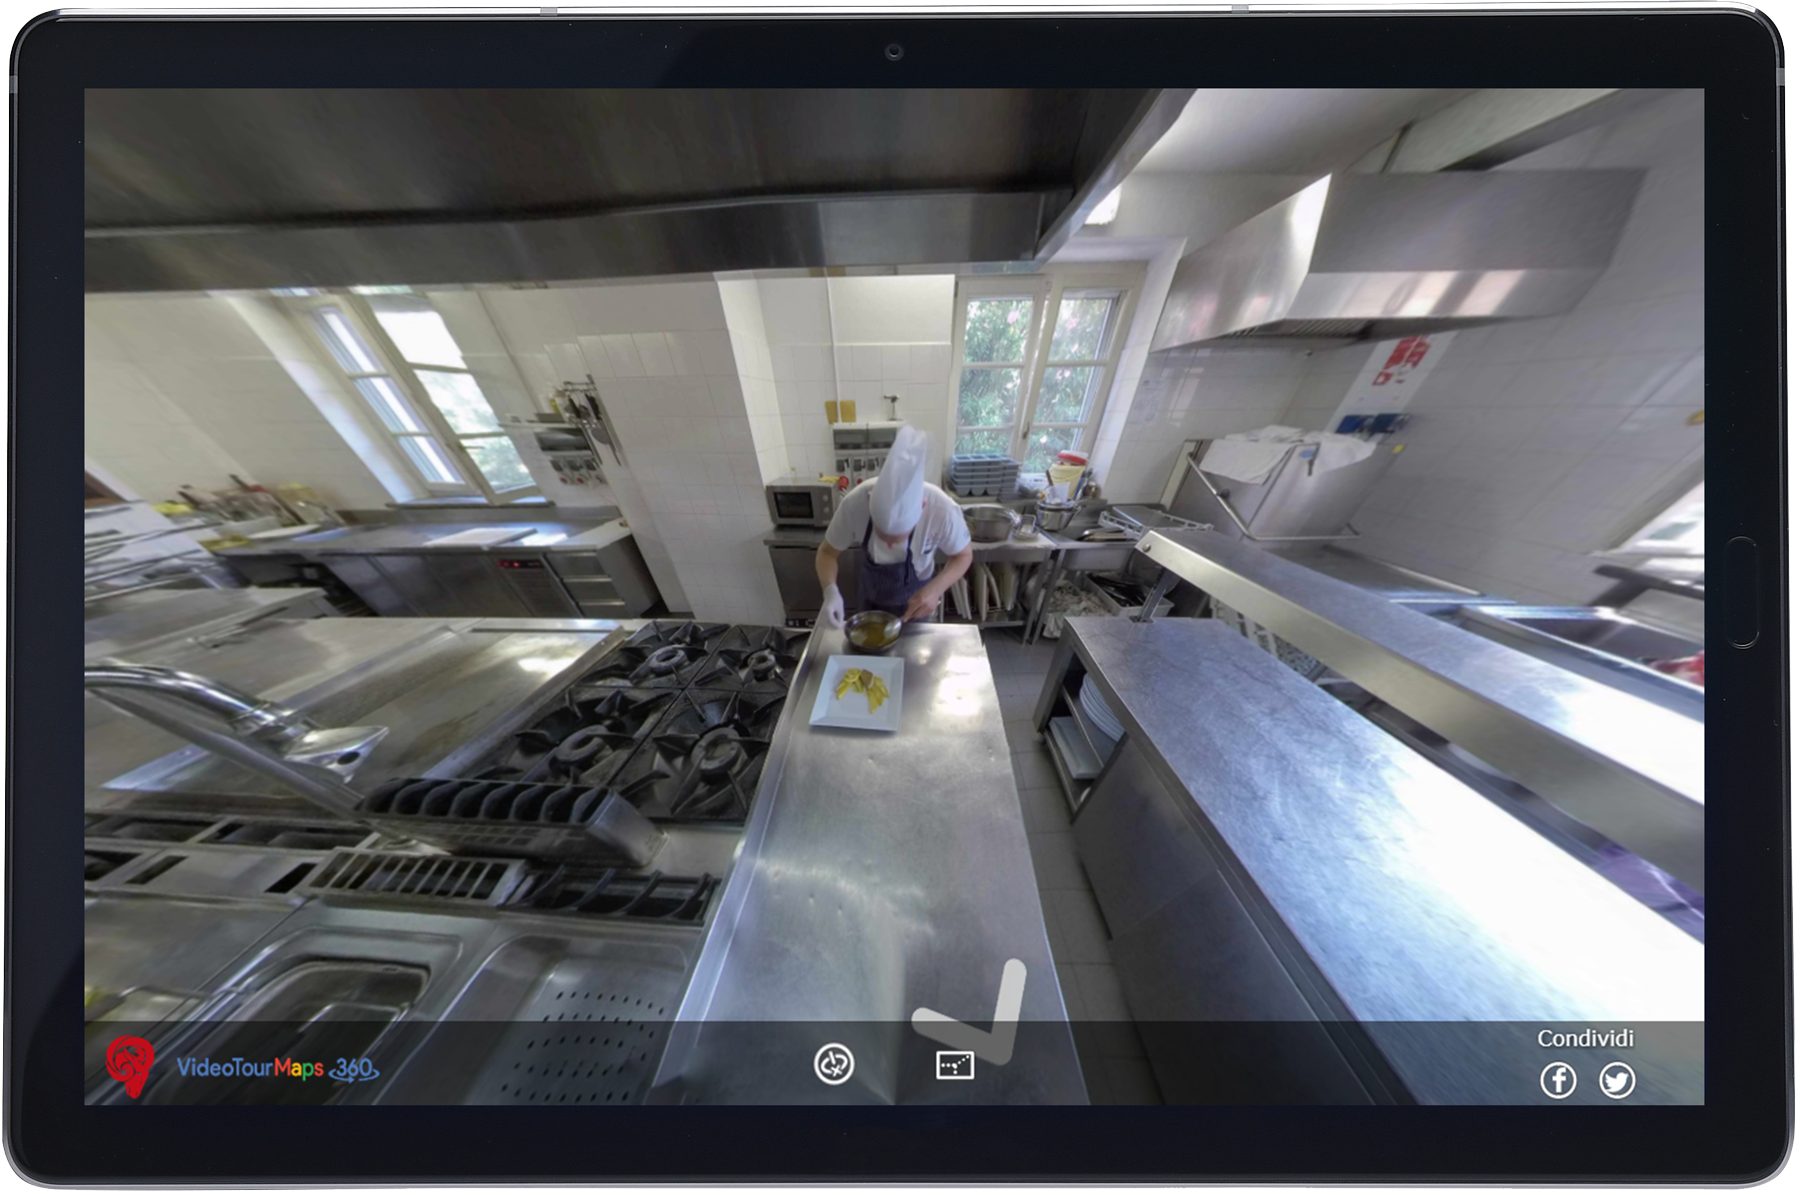 Video Tour Virtuale Varese su tablet - Ristorante Tana d'Orso